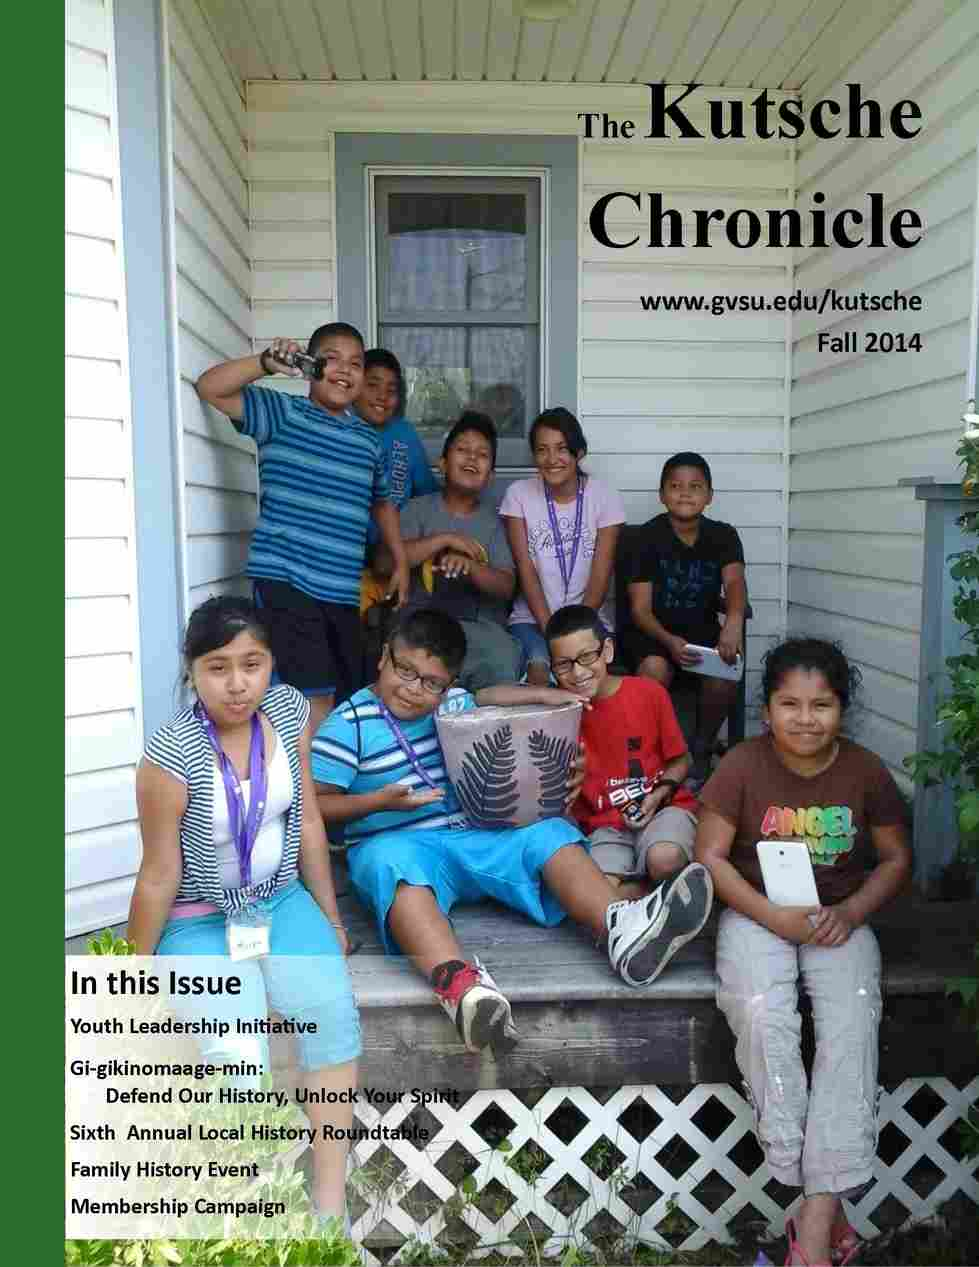 Fall 2014 Kutsche Chronicle